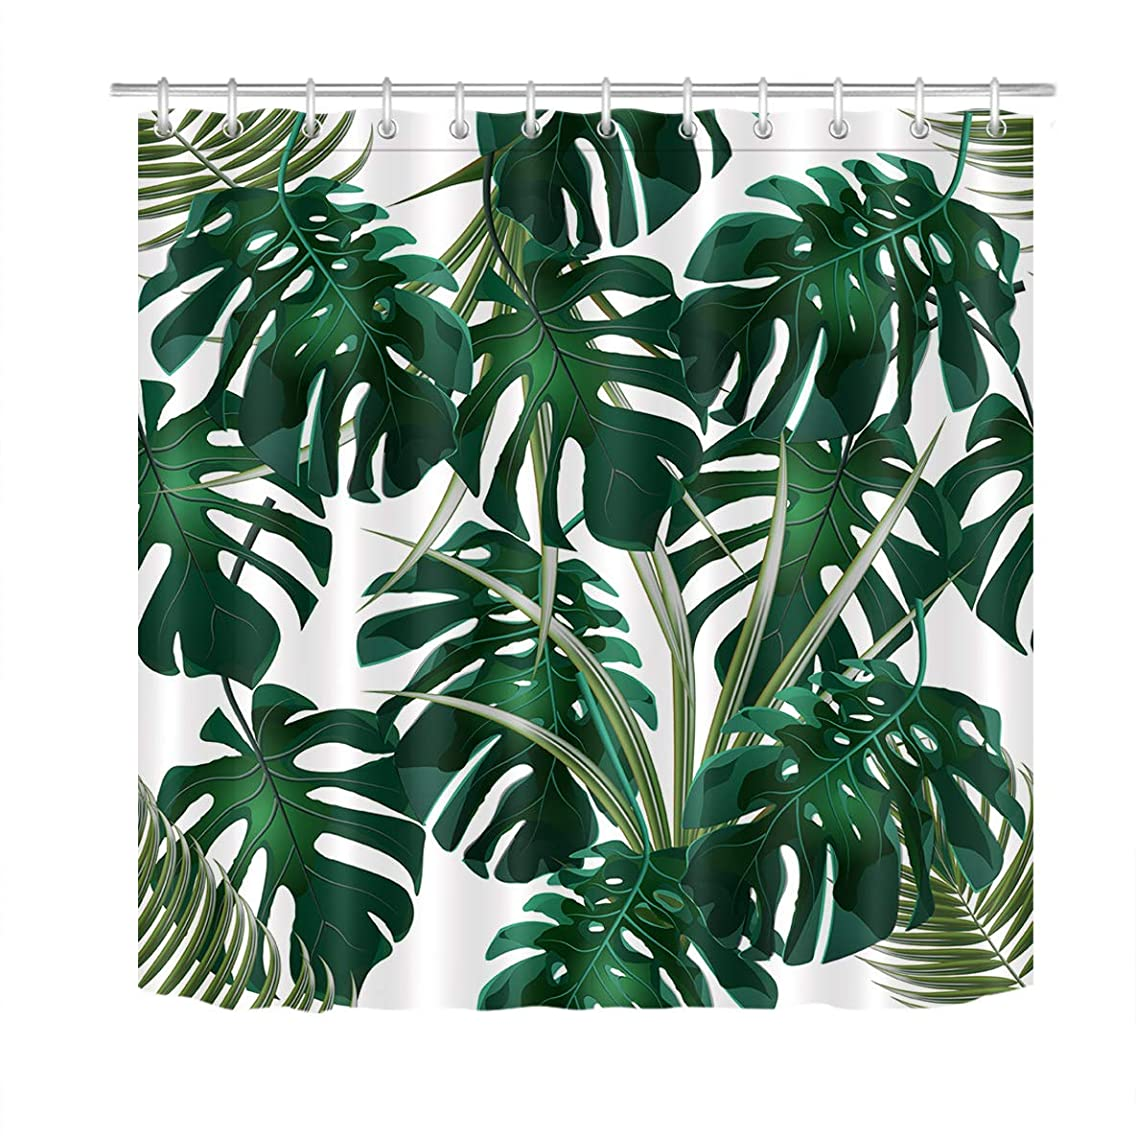 LB Jungle Thickets of Tropical Palm Leaves Shower Curtain Set Dark Green Monstera Bathroom Curtain with Hooks Kids Adults Bathroom Decorations 72x72 inch Waterproof Polyester Fabric